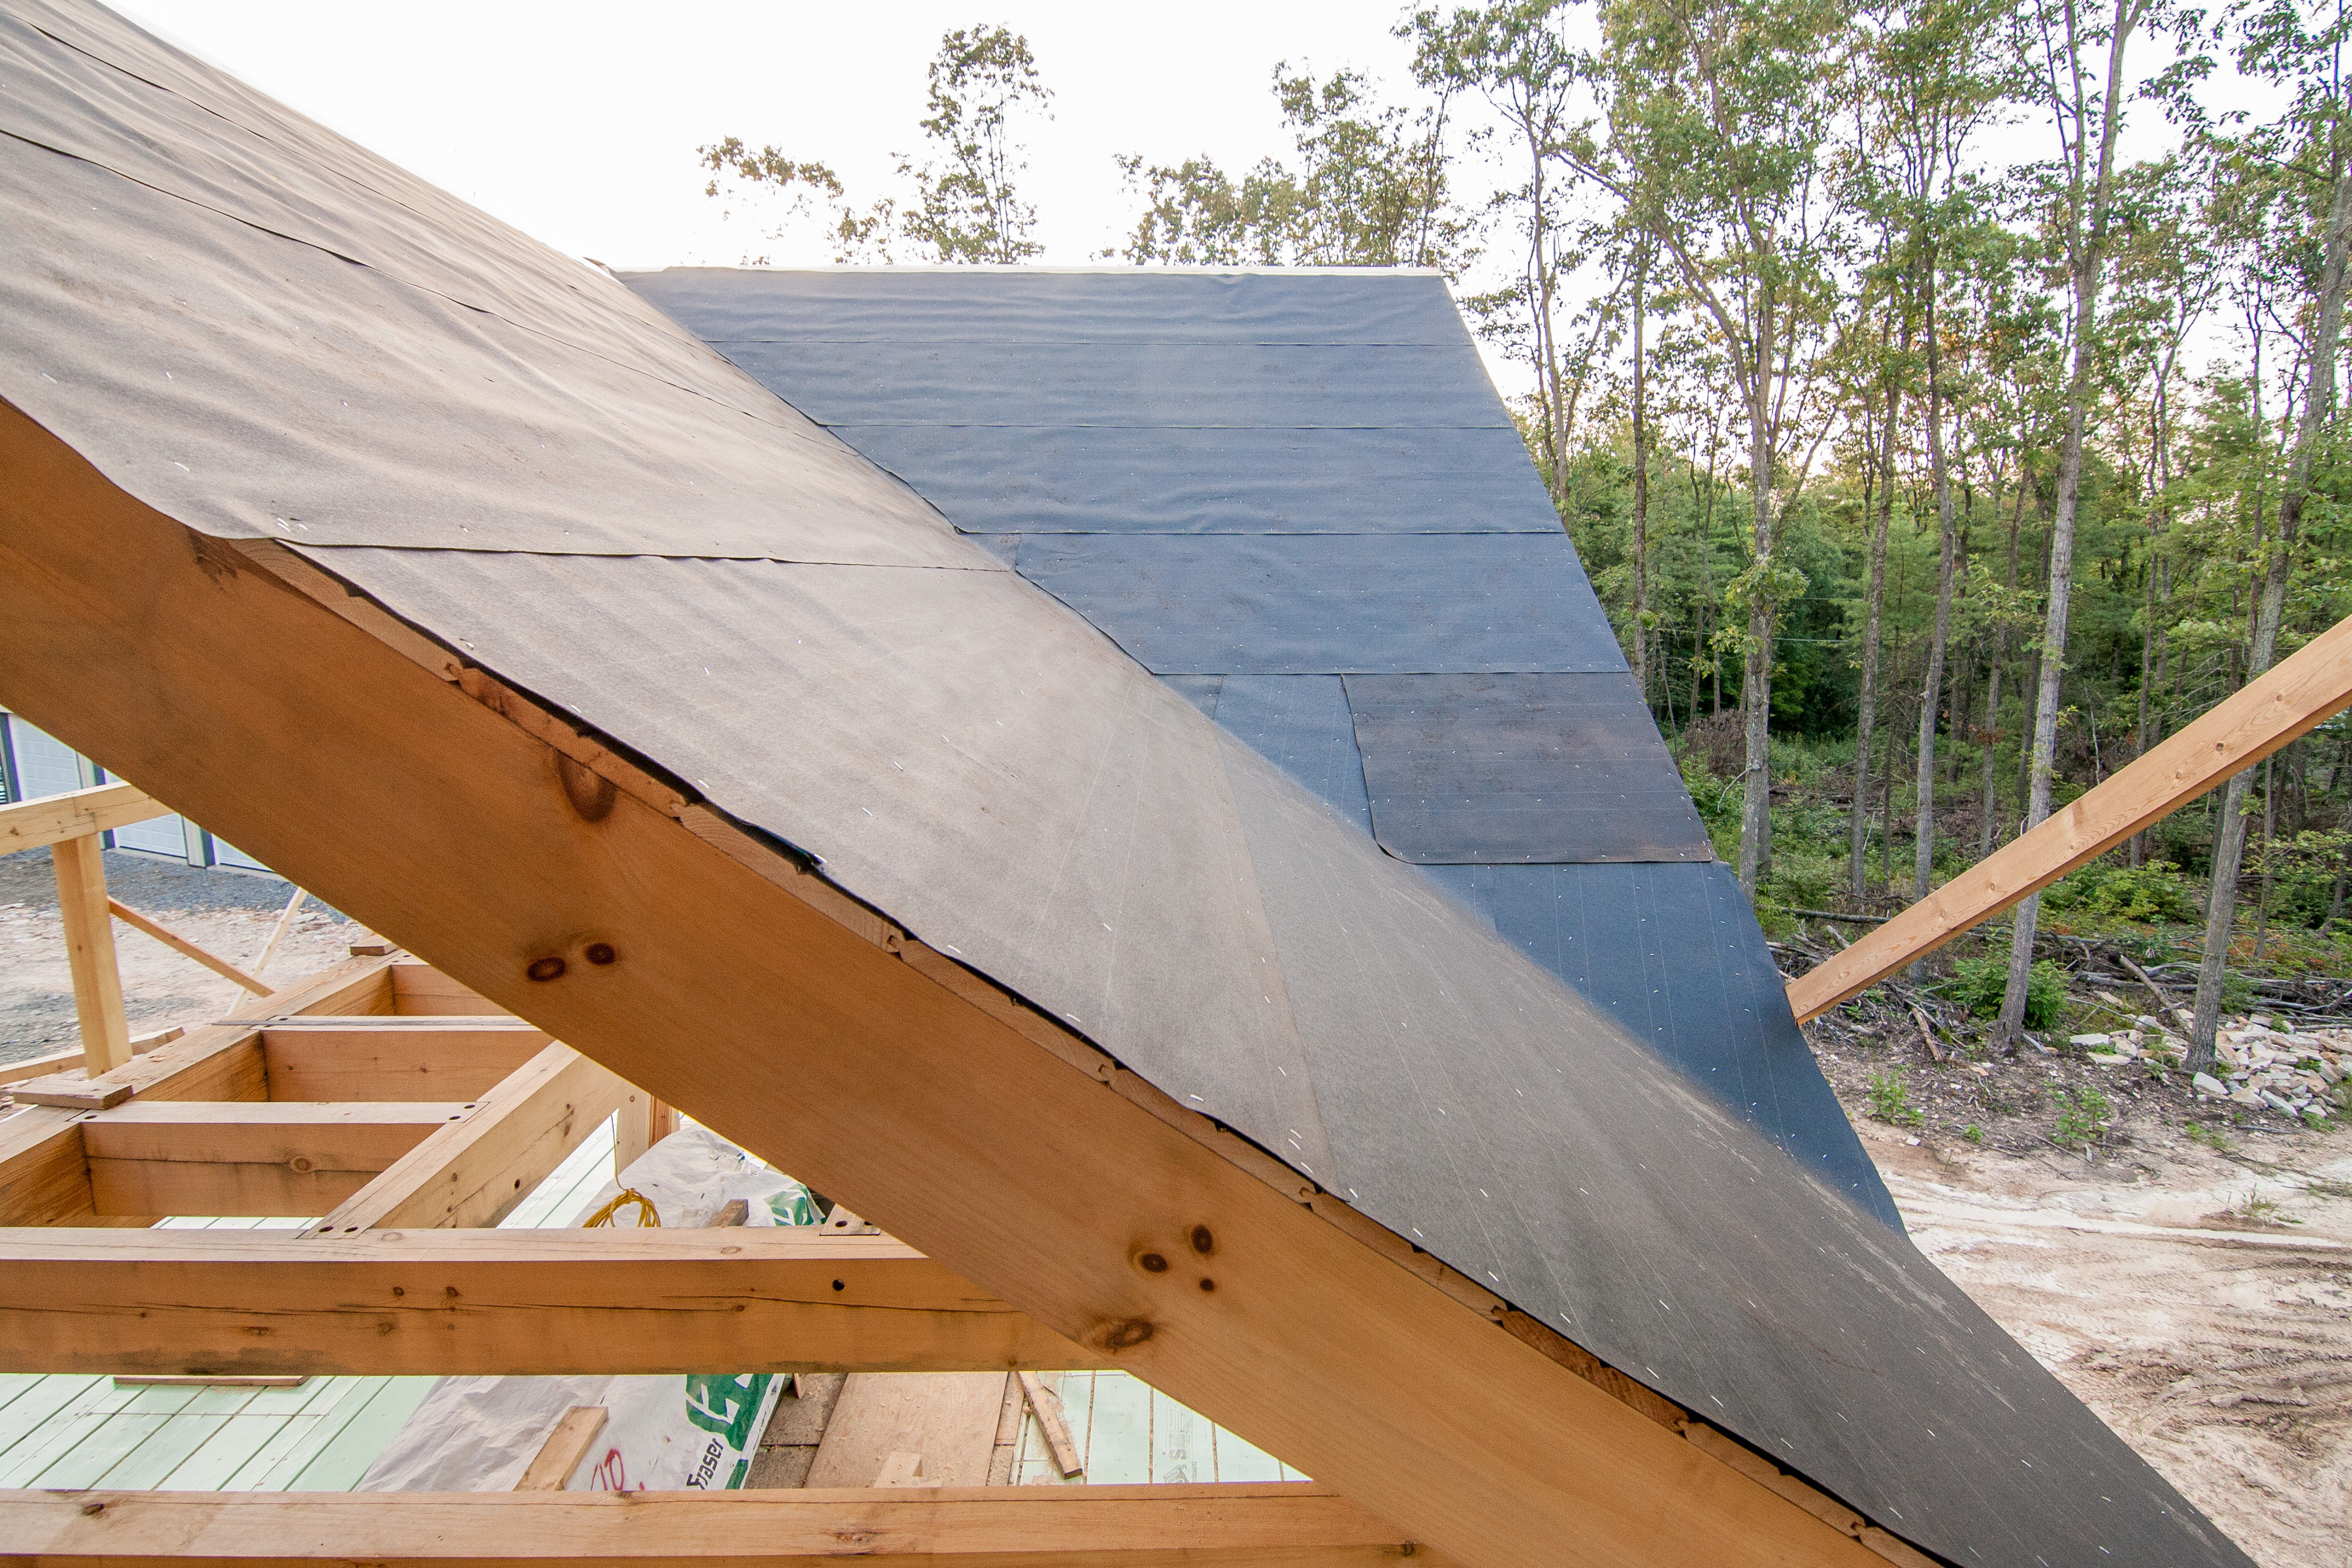 Ordinaire ... Log Home Felt Paper Covering Tongue And Groove On Ceiling Of Post And  Beam Roof, Post And